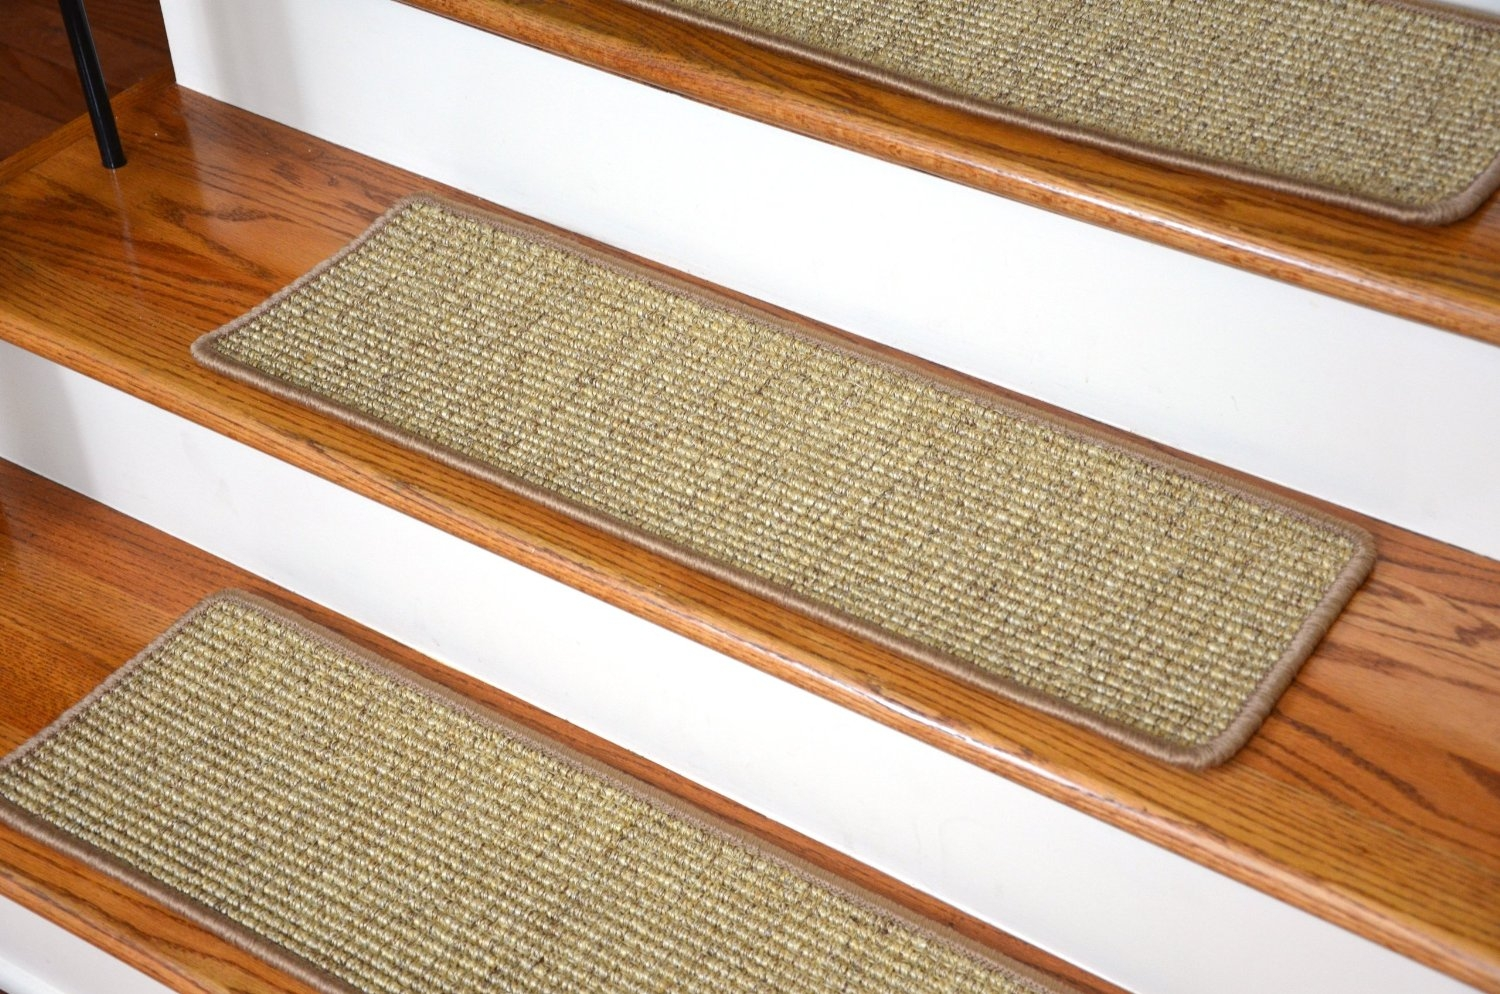 Easy Installing Carpet Stair Treads Stair Design Ideas With Diy Stair Tread Rugs (View 6 of 15)